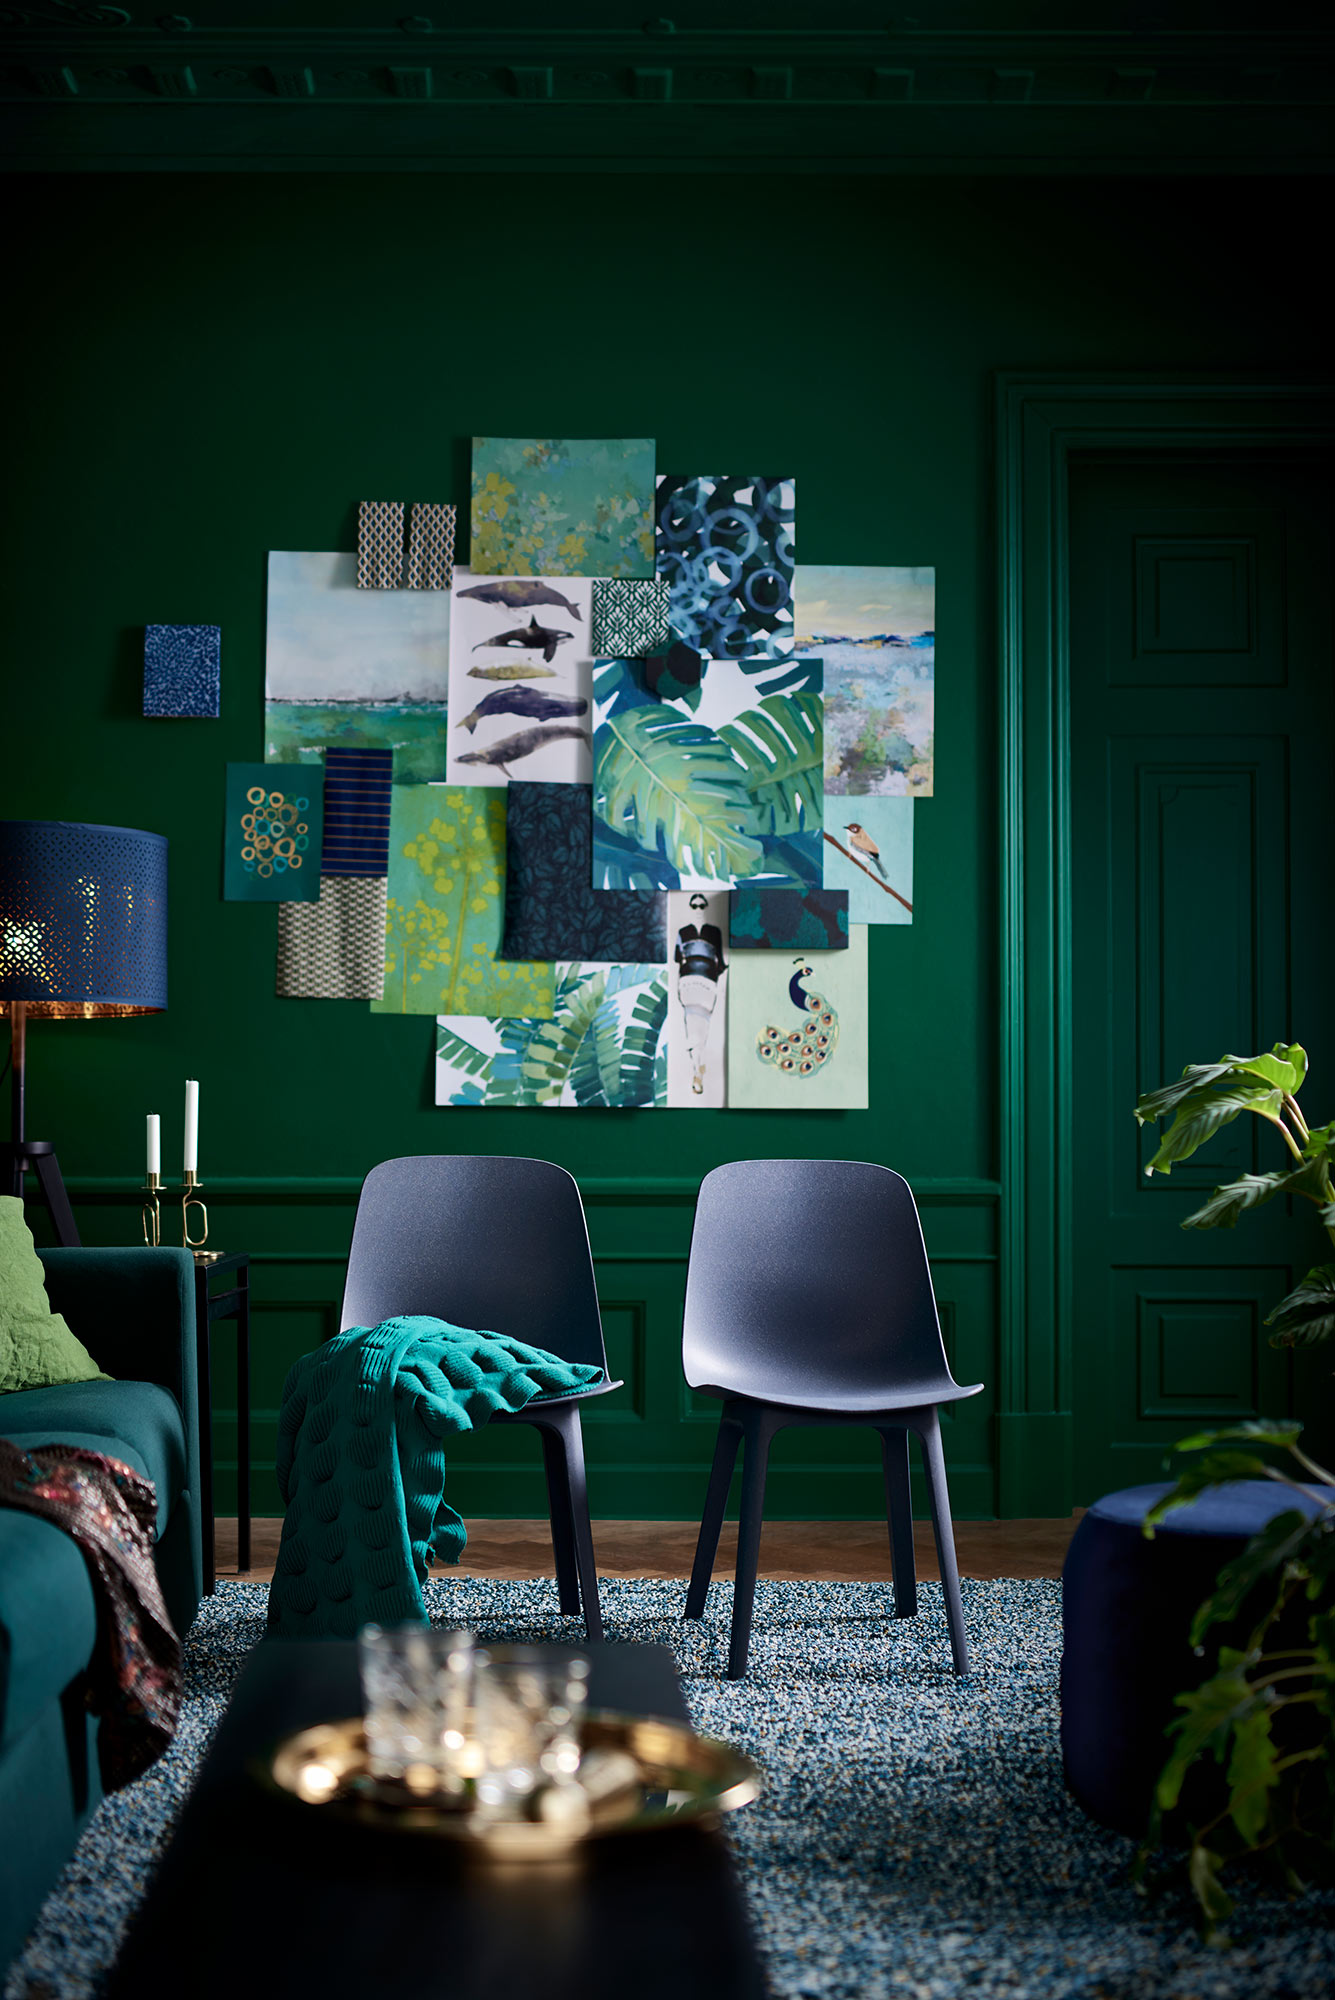 First Look: 10 Things You're Definitely Going to Want from IKEA's 2018 Catalog, Before it Comes Out